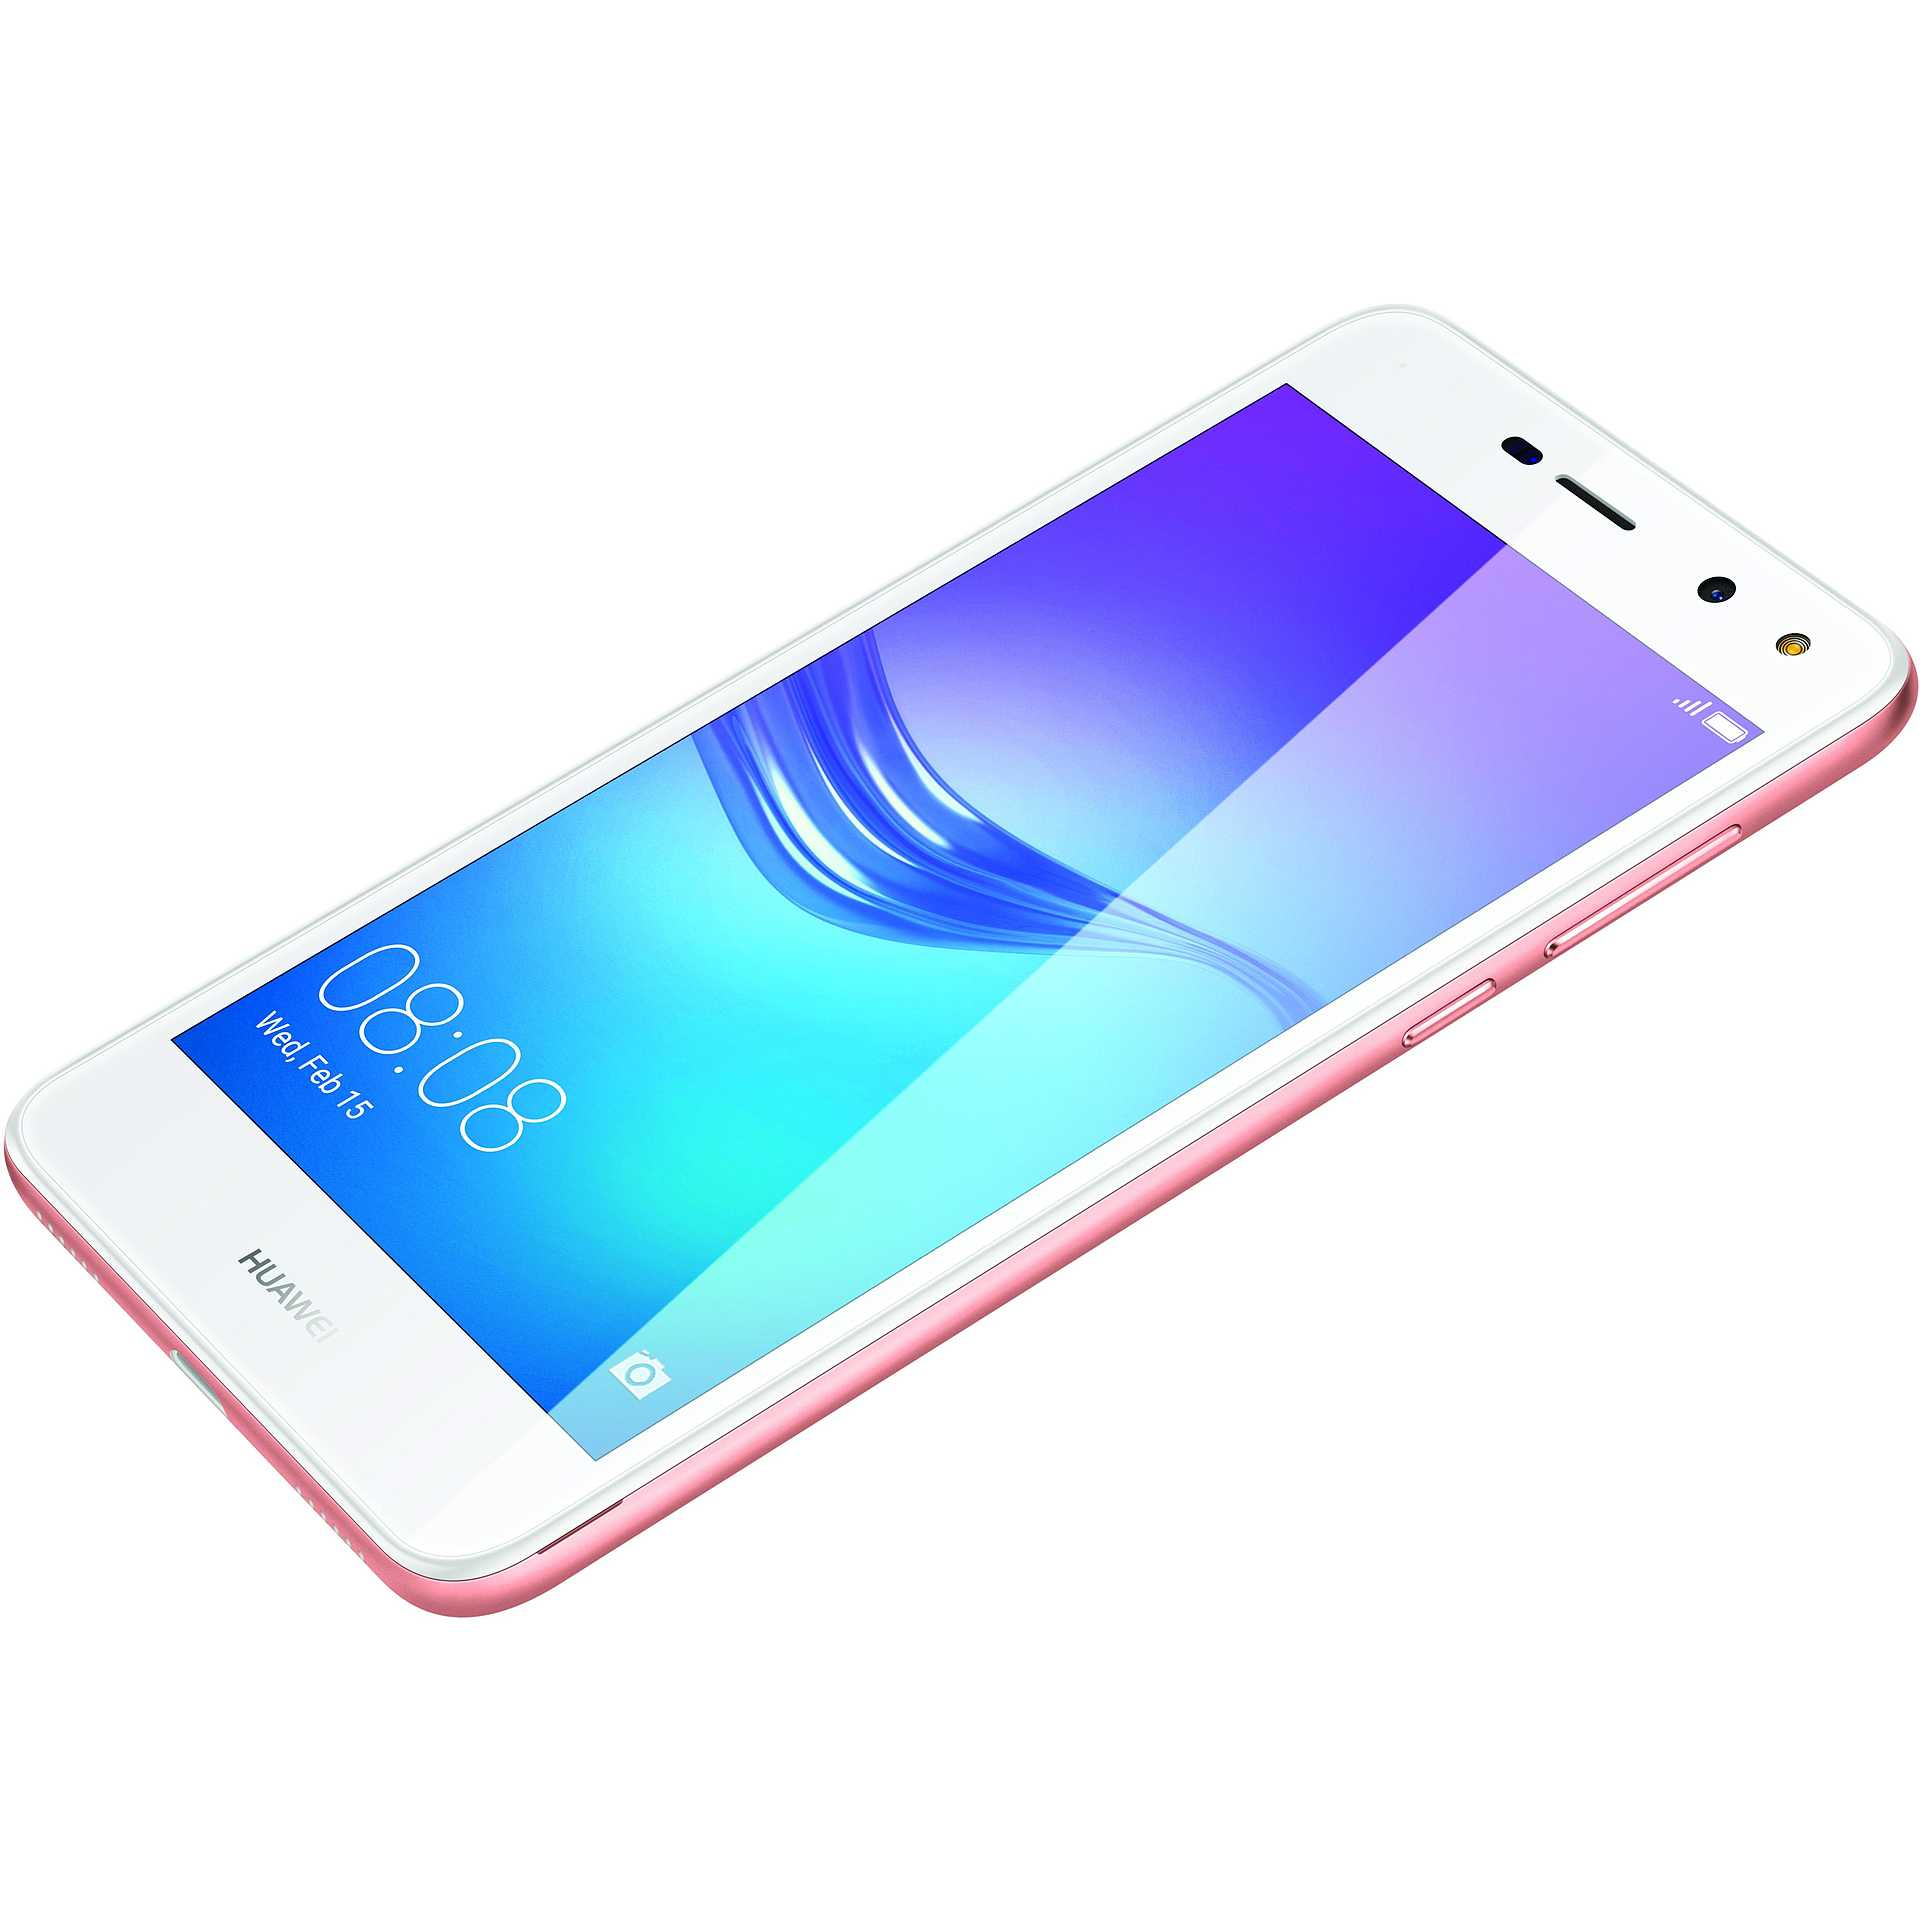 Huawei Nova Young Smartphone Dual Sim Display Hd 5 Pollici Ram 2 Gb